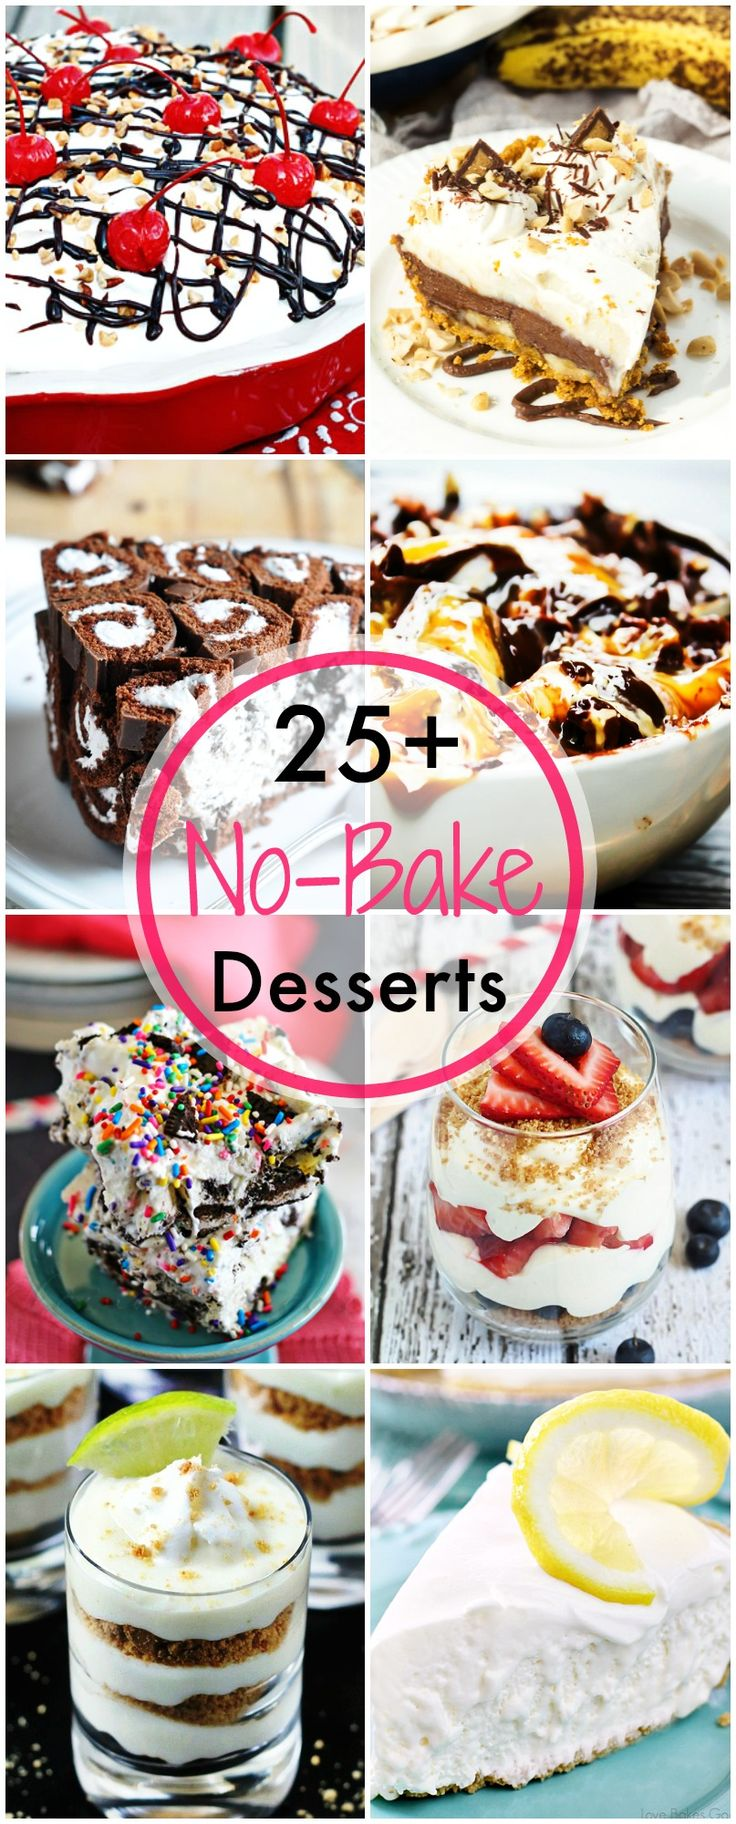 No Bake Desserts on cravingsofalunatic.com- No-Bake Desserts are perfect for summer. They're quick, easy, and delicious. Nothing beats a cool treat after a long day in the hot sun. Cool off with any, or all, of these 25+ recipes! (@CravingsLunatic)